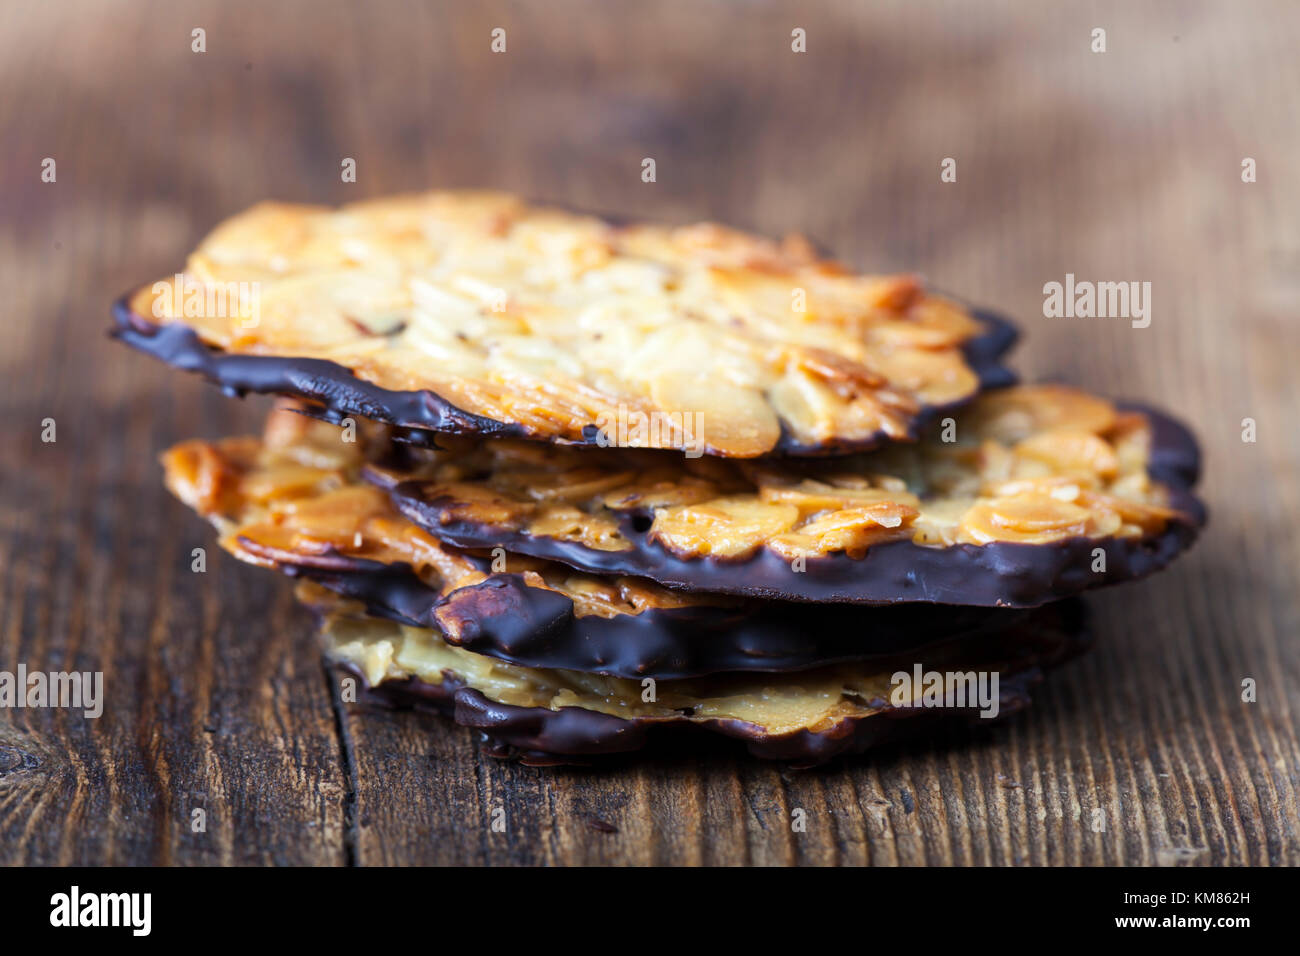 closeup of florentiner cookies on wood - Stock Image